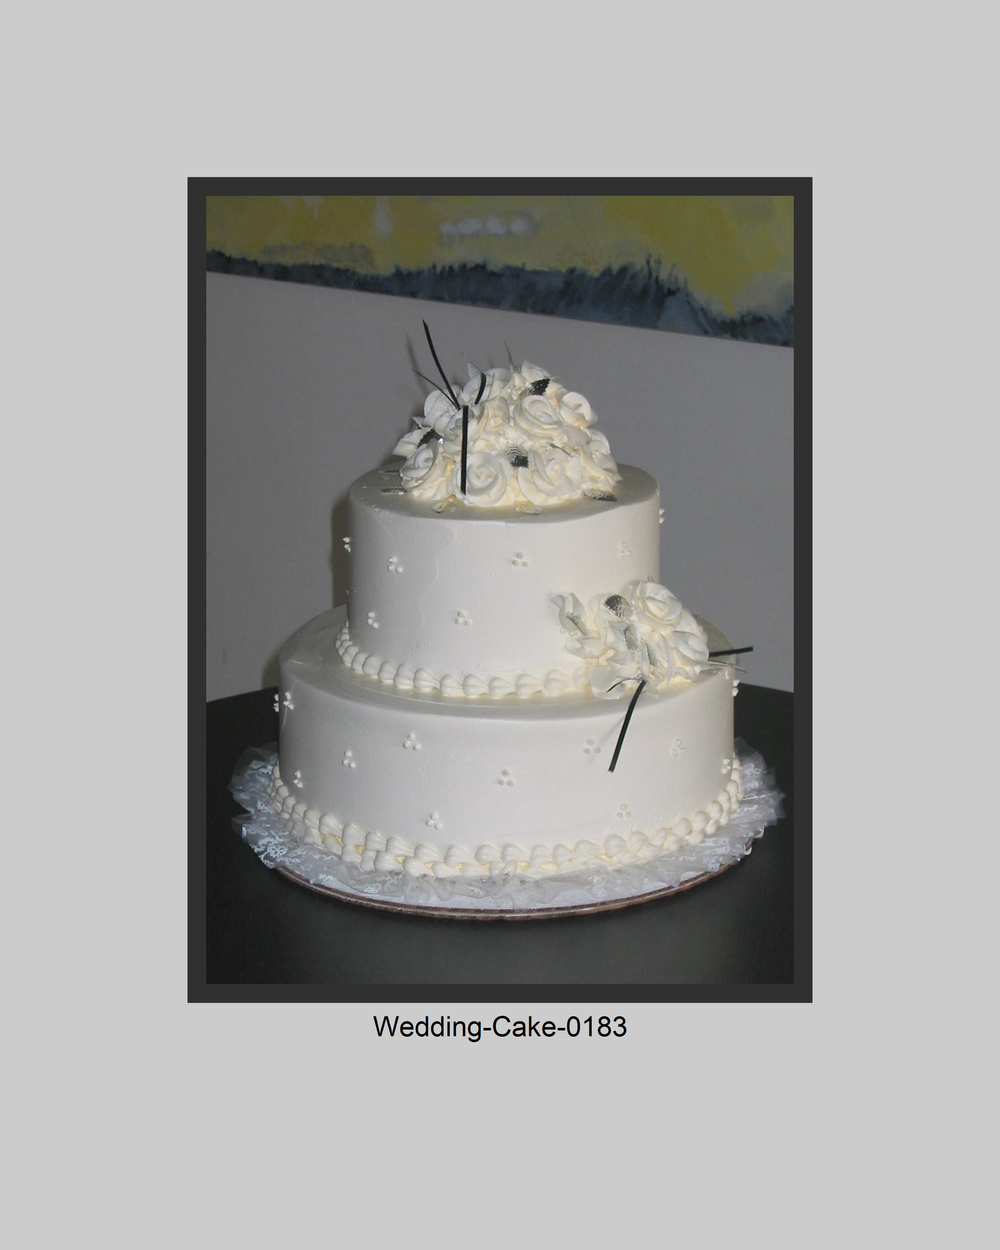 Wedding-Cake-Prints-0183.jpg